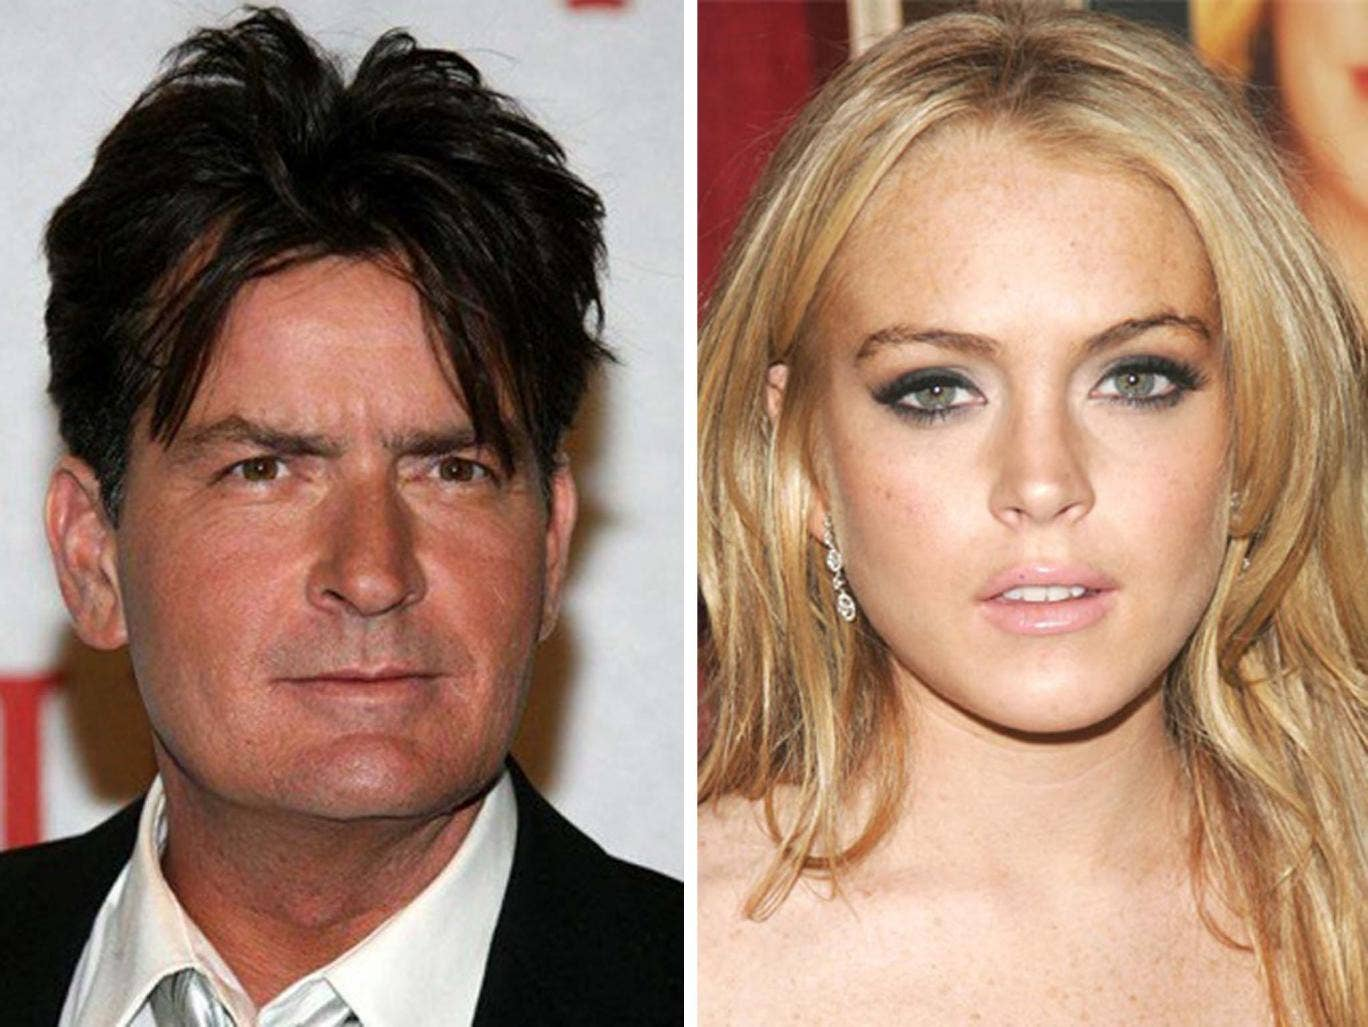 Lindsay Lohan is due to appear on Charlie Sheen's show Anger Management